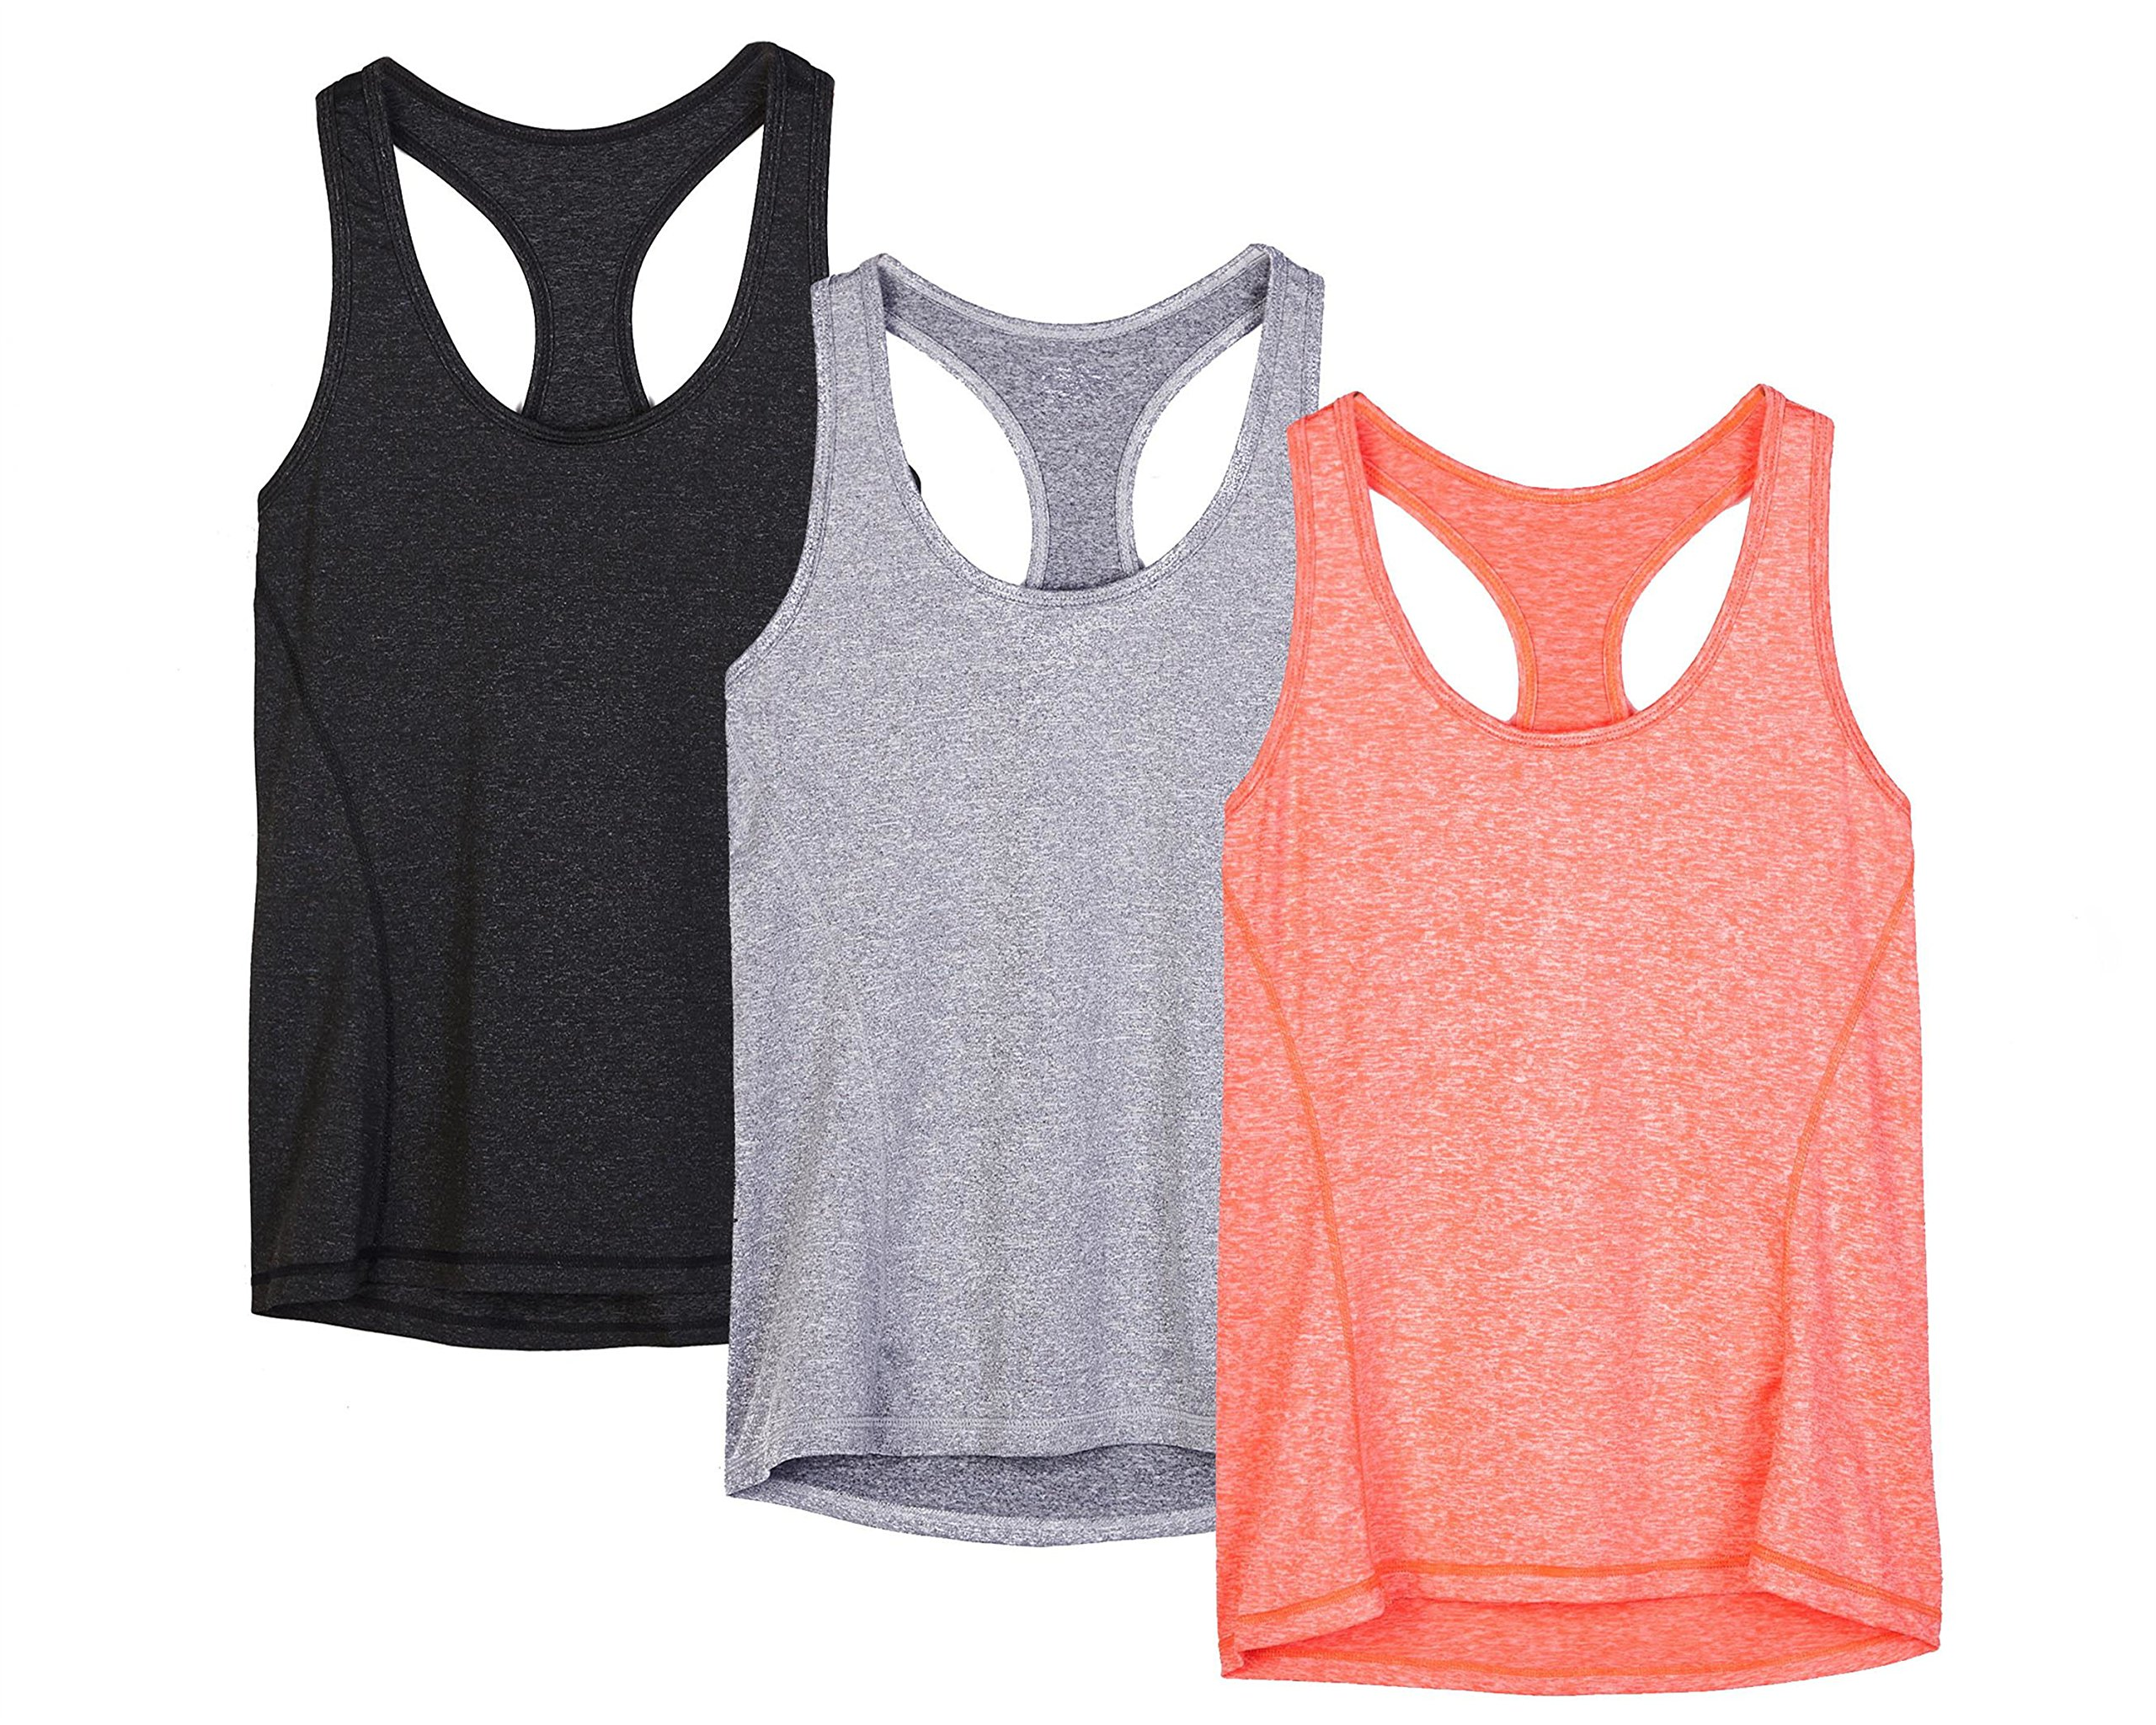 icyzone Workout Tank Tops for Women - Racerback Athletic Yoga Tops, Running Exercise Gym Shirts(Pack of 3)(XS, Black/Granite/Orange) by icyzone